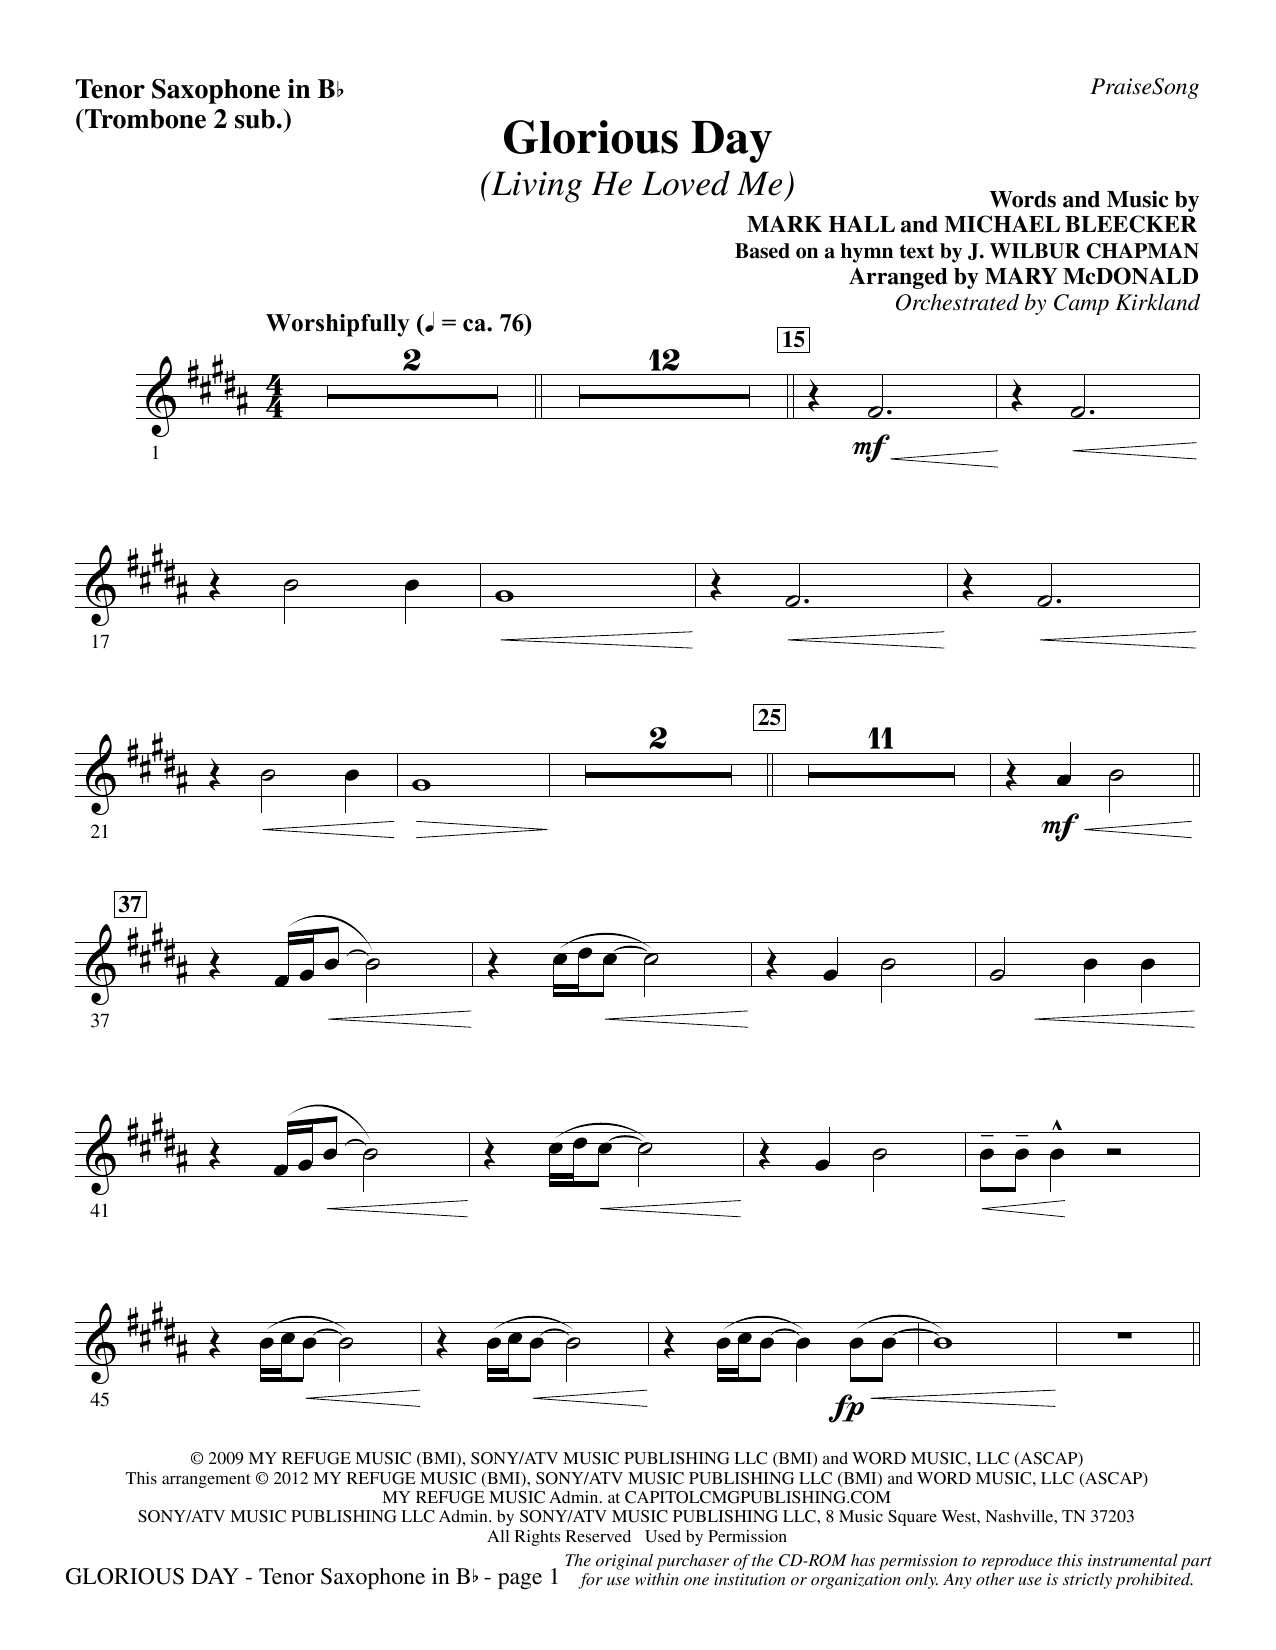 Glorious Day (Living He Loved Me) - Tenor Sax (sub. Tbn 2) Sheet Music